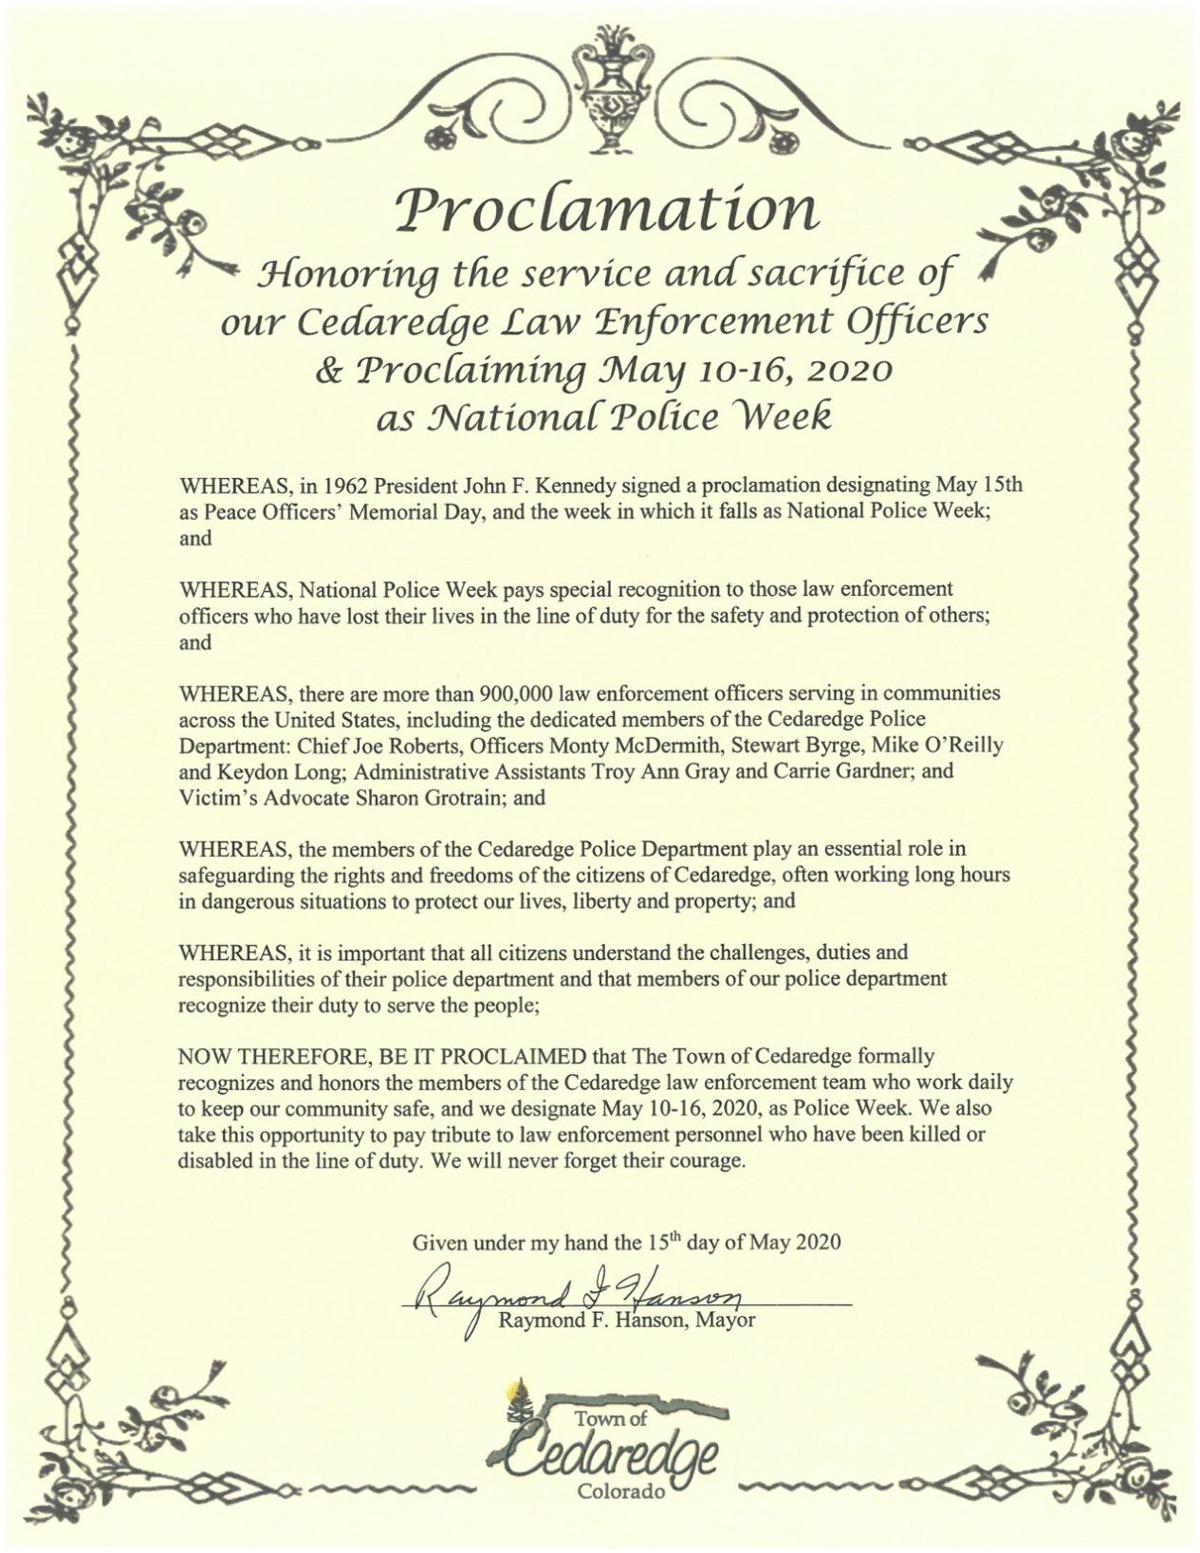 Police Week Proclamation, 2020